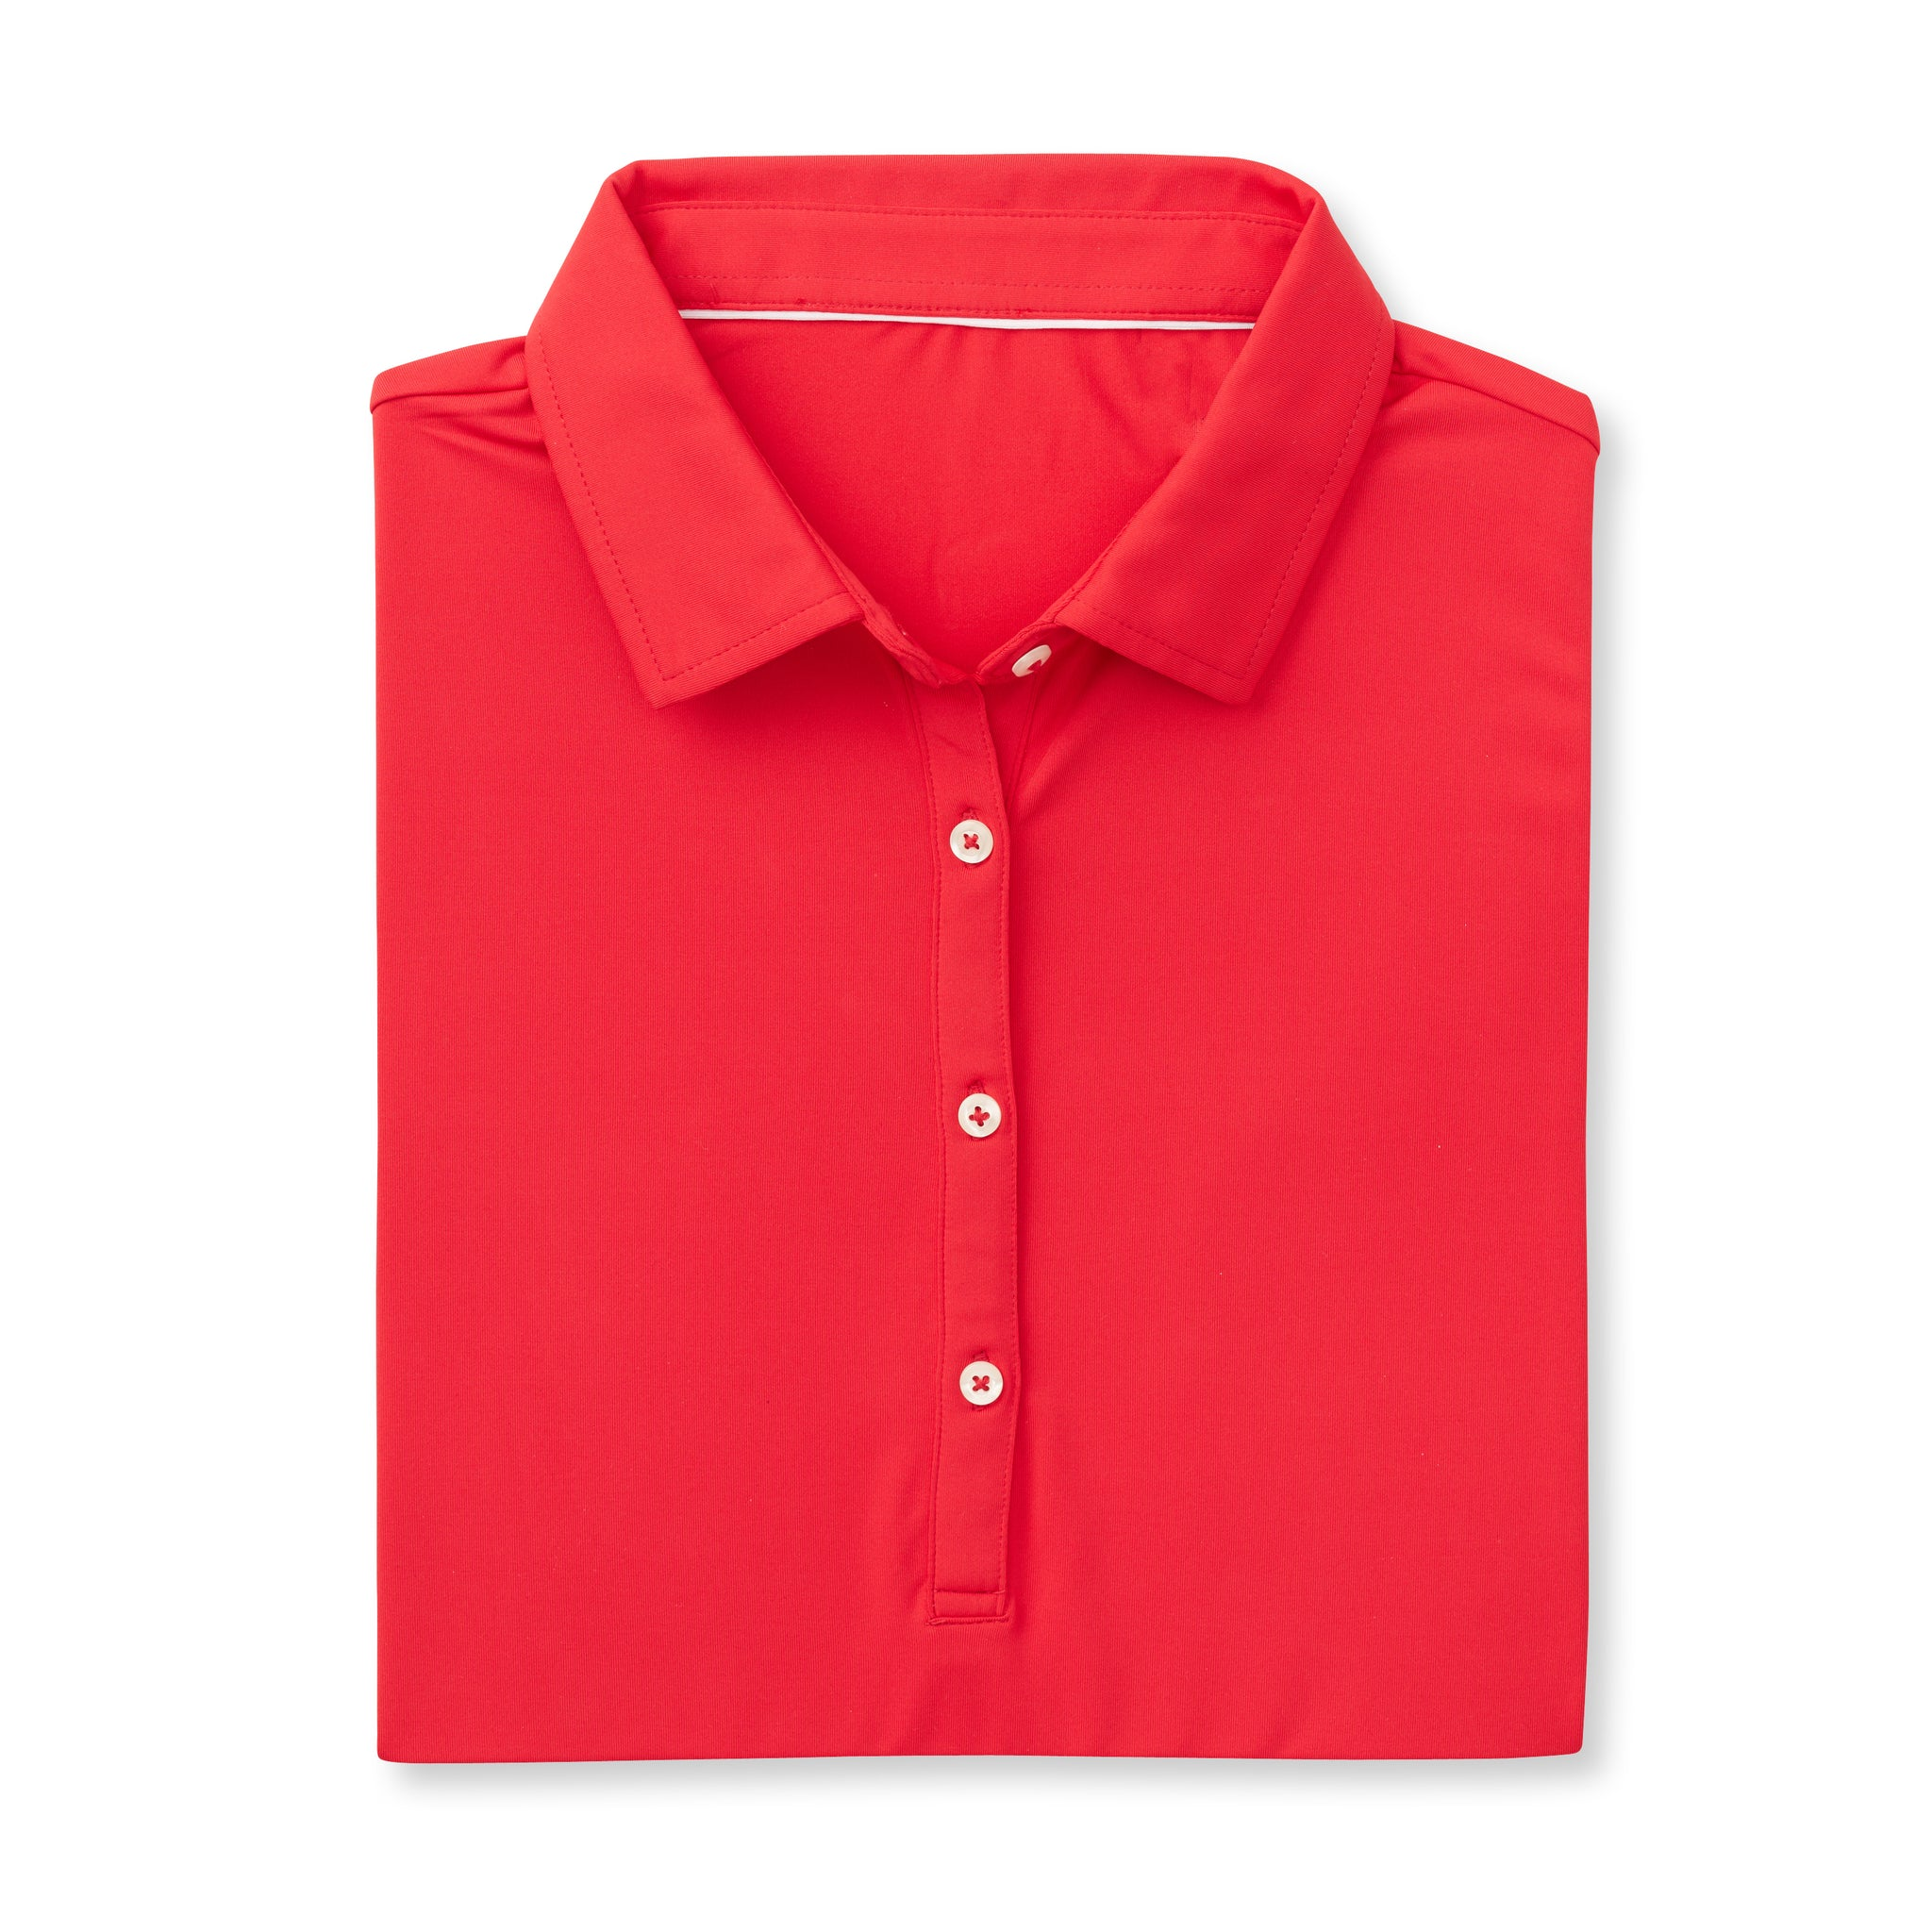 Womens ECOTEC Short Sleeve Polo - Patriot Red IS26000W